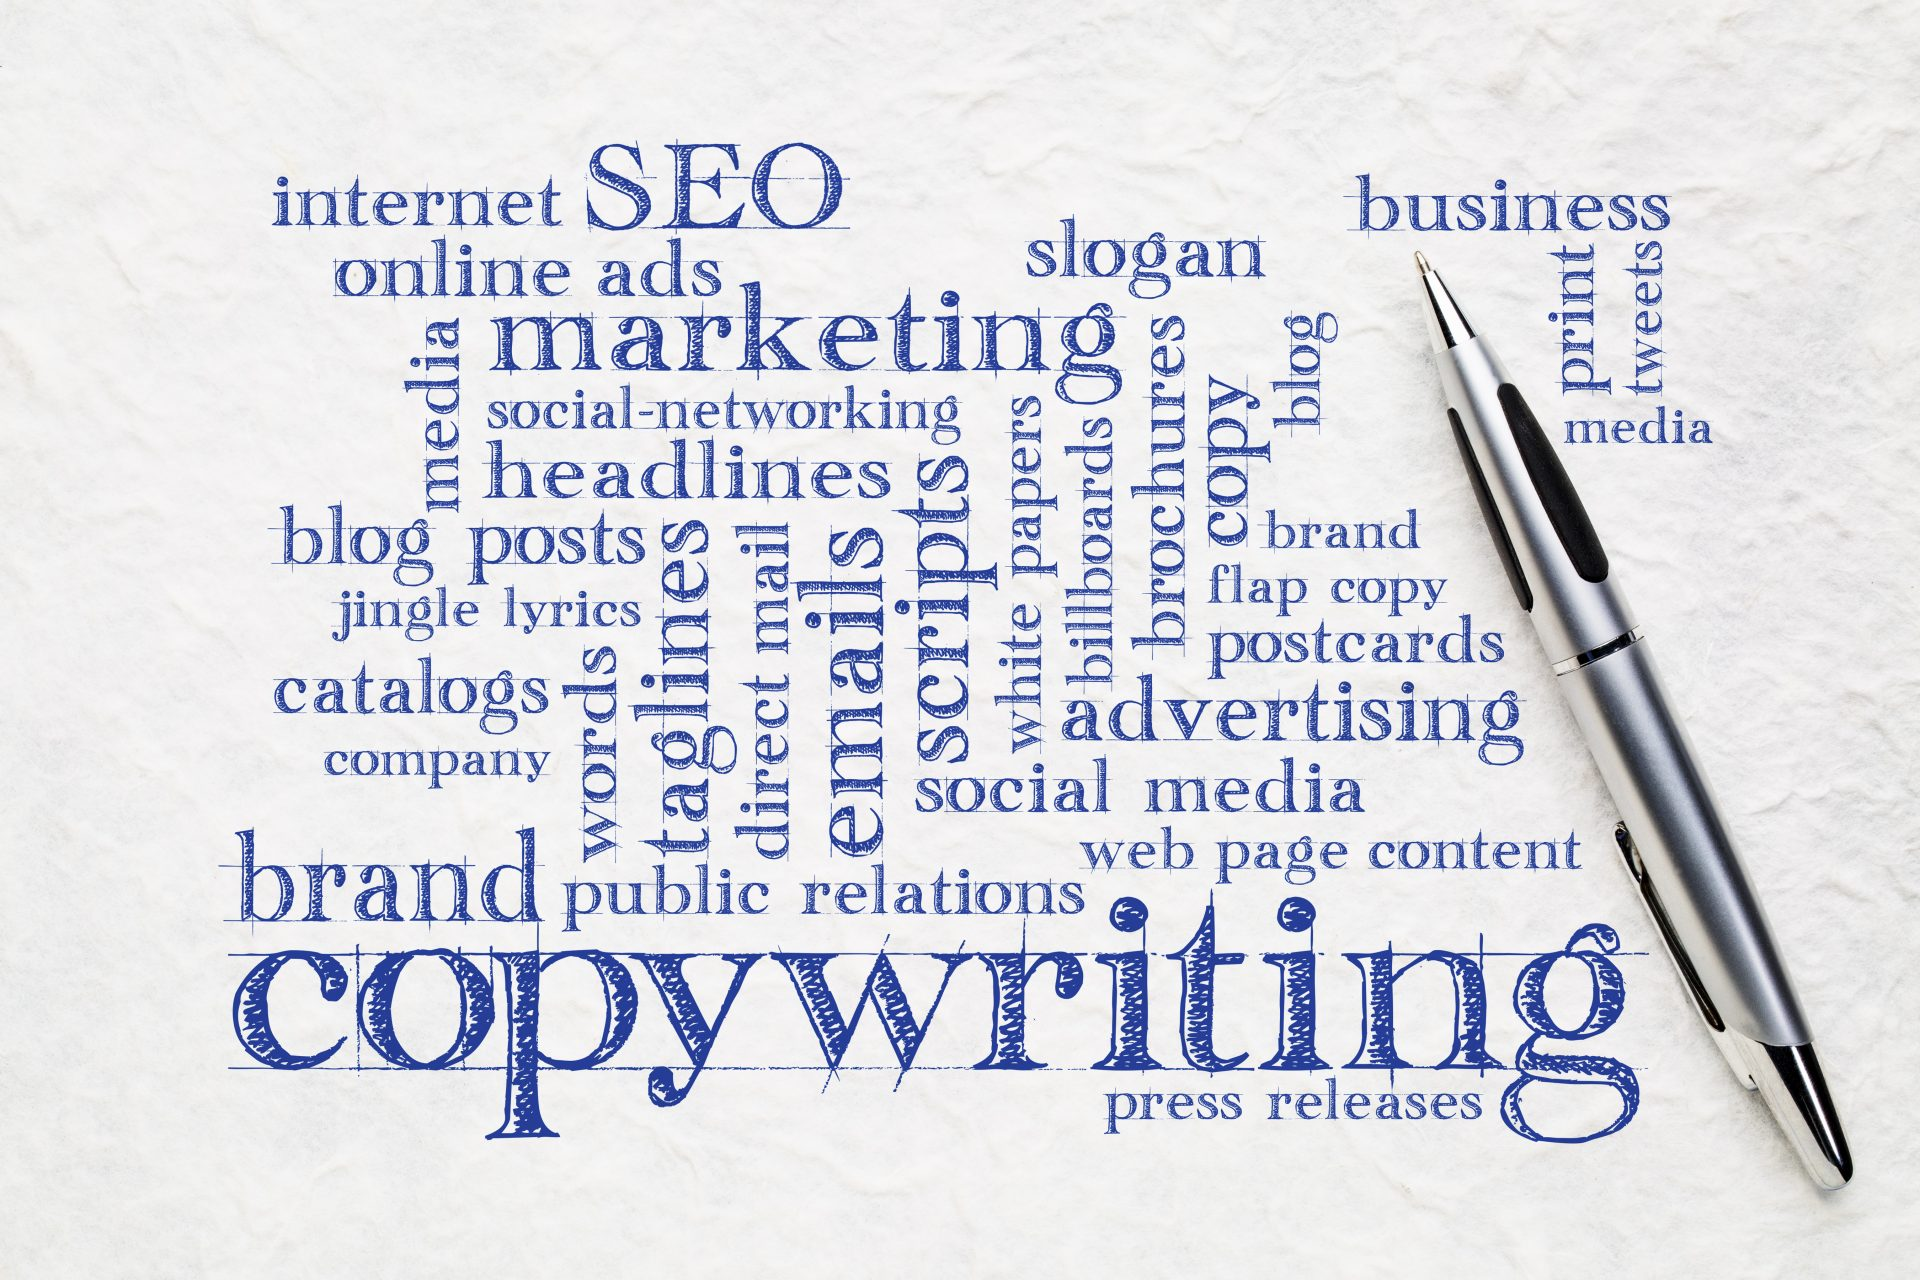 Bergen County Web Design copywriting